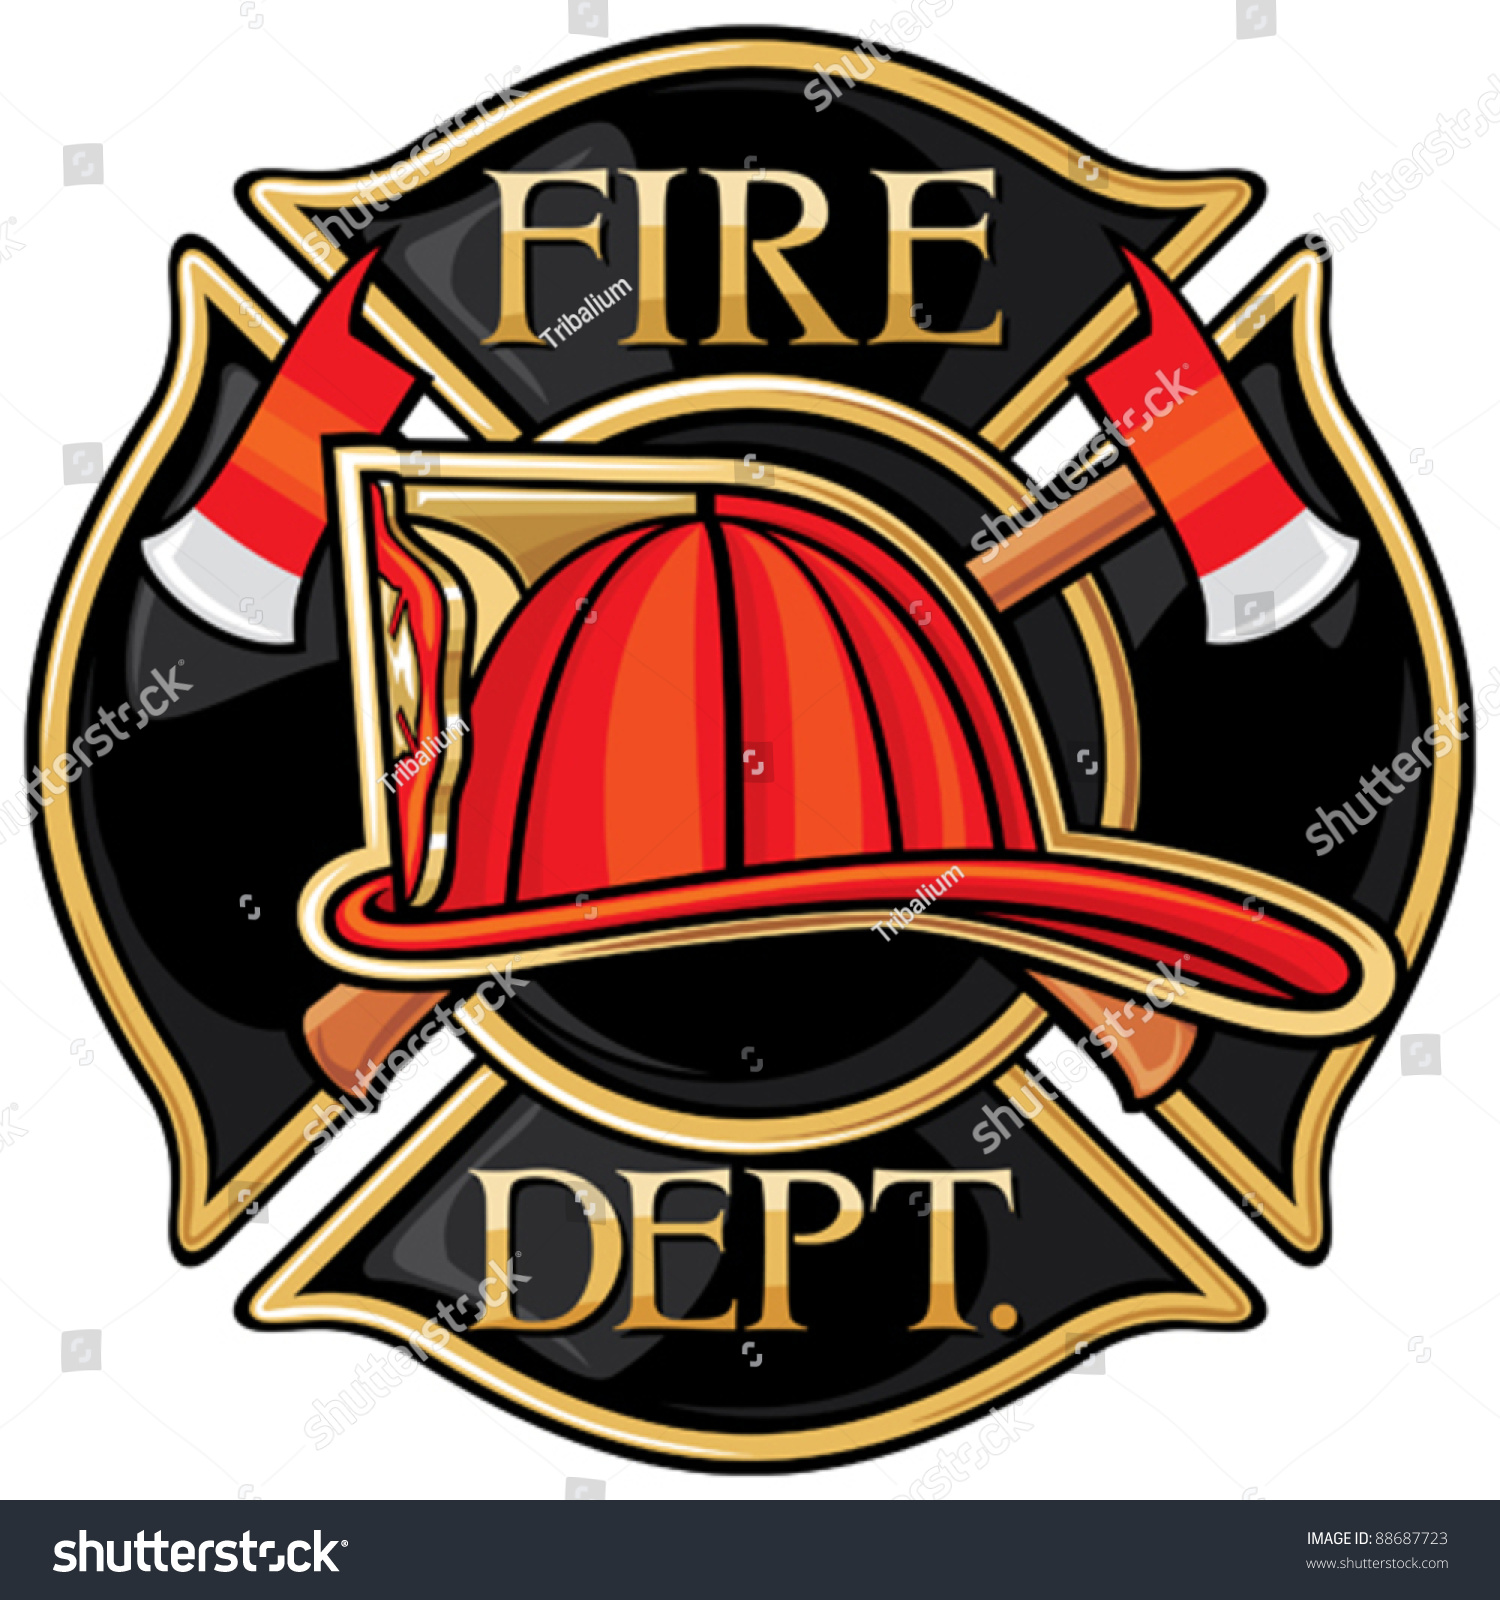 Fire Department Firefighters Maltese Cross Symbol Stock